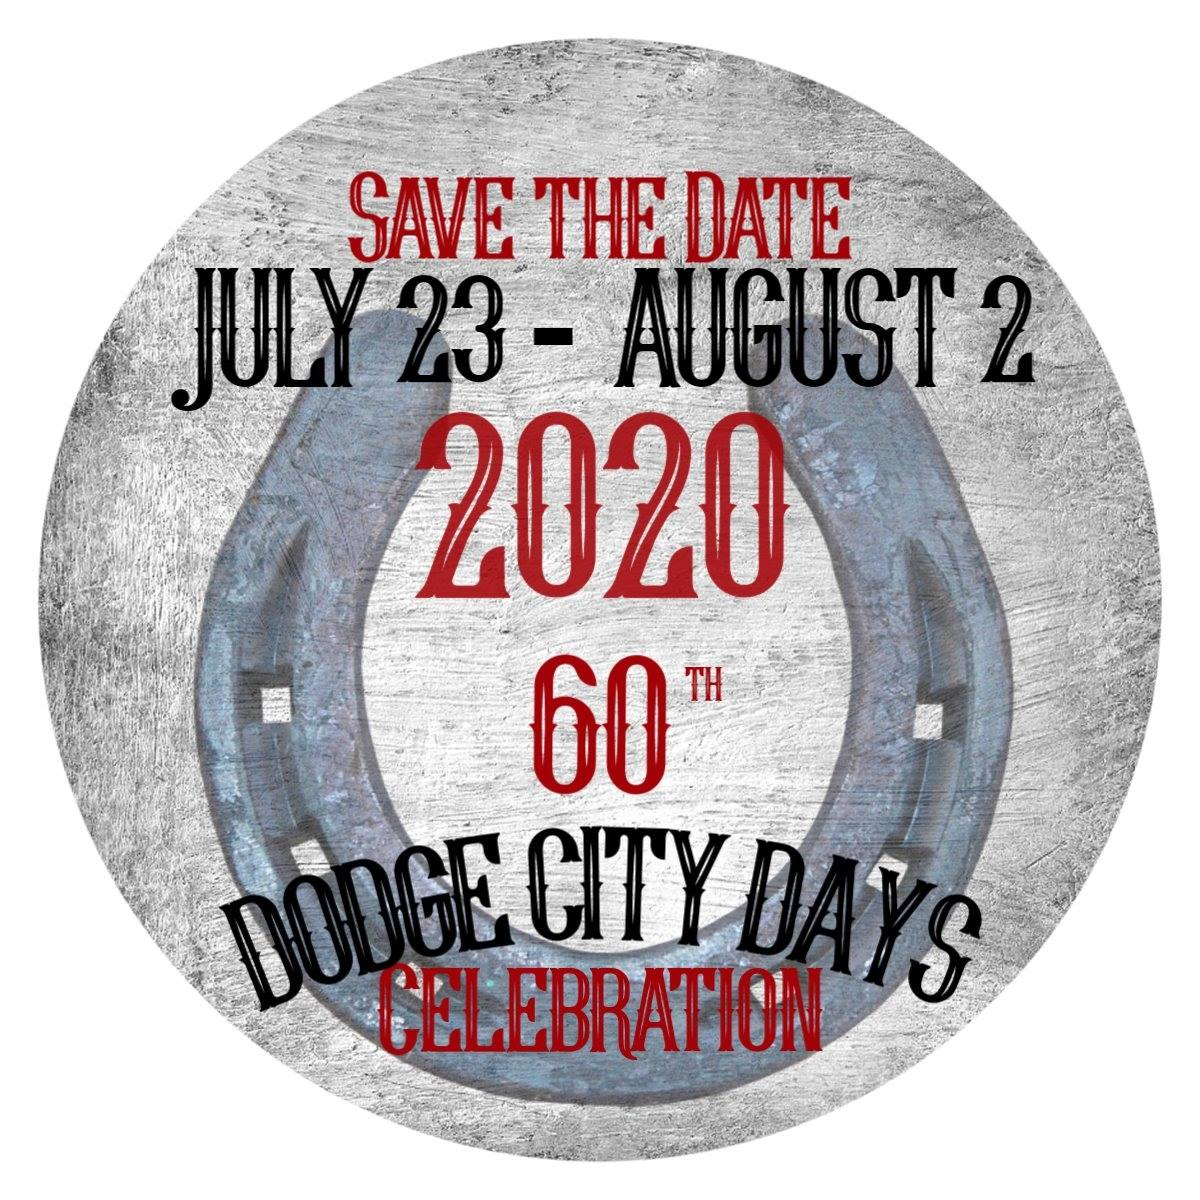 Dodge City Days 2020